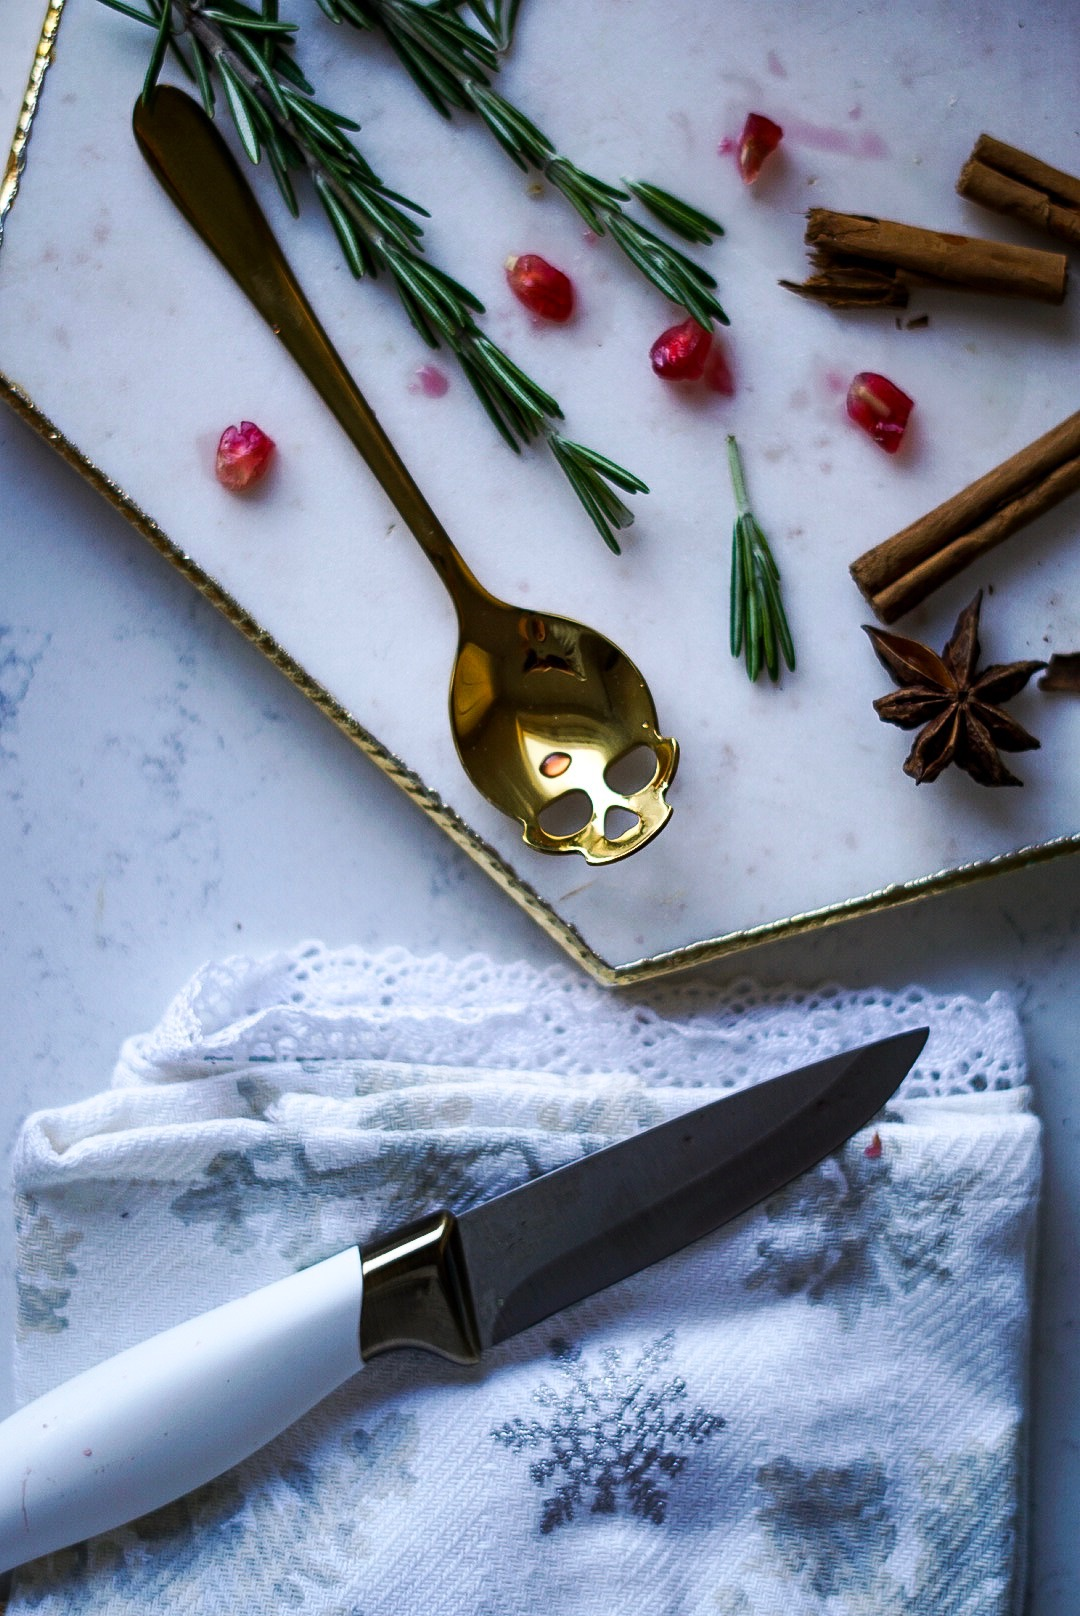 TK Maxx white marble chopping board with rosemary, pomegranate, cinnamon, star anise and orange